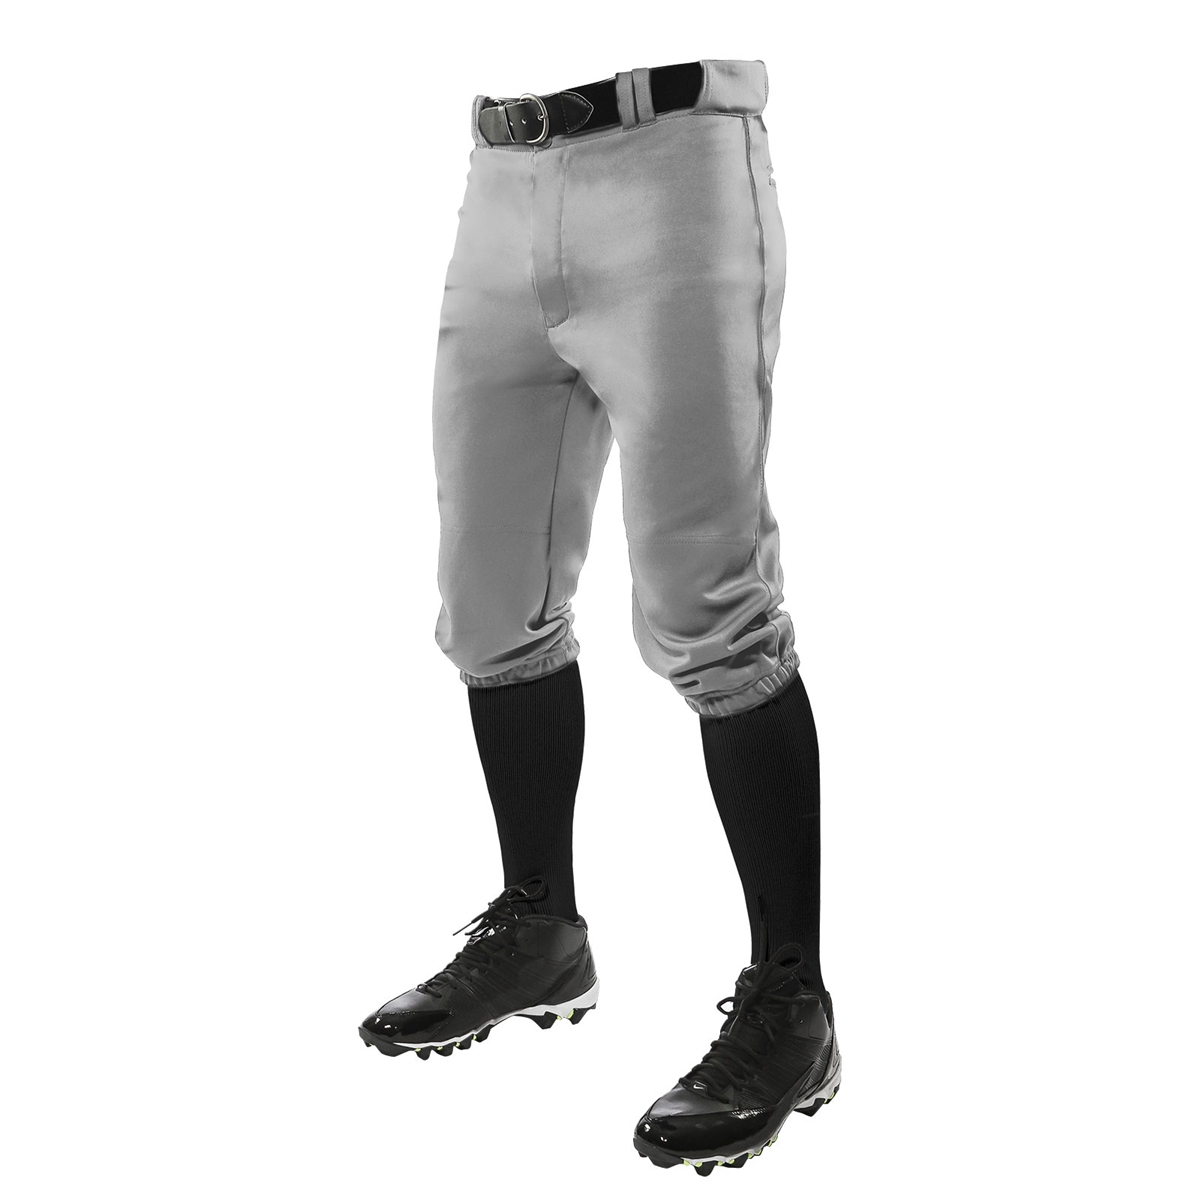 Knickers With Baseball Uniforms